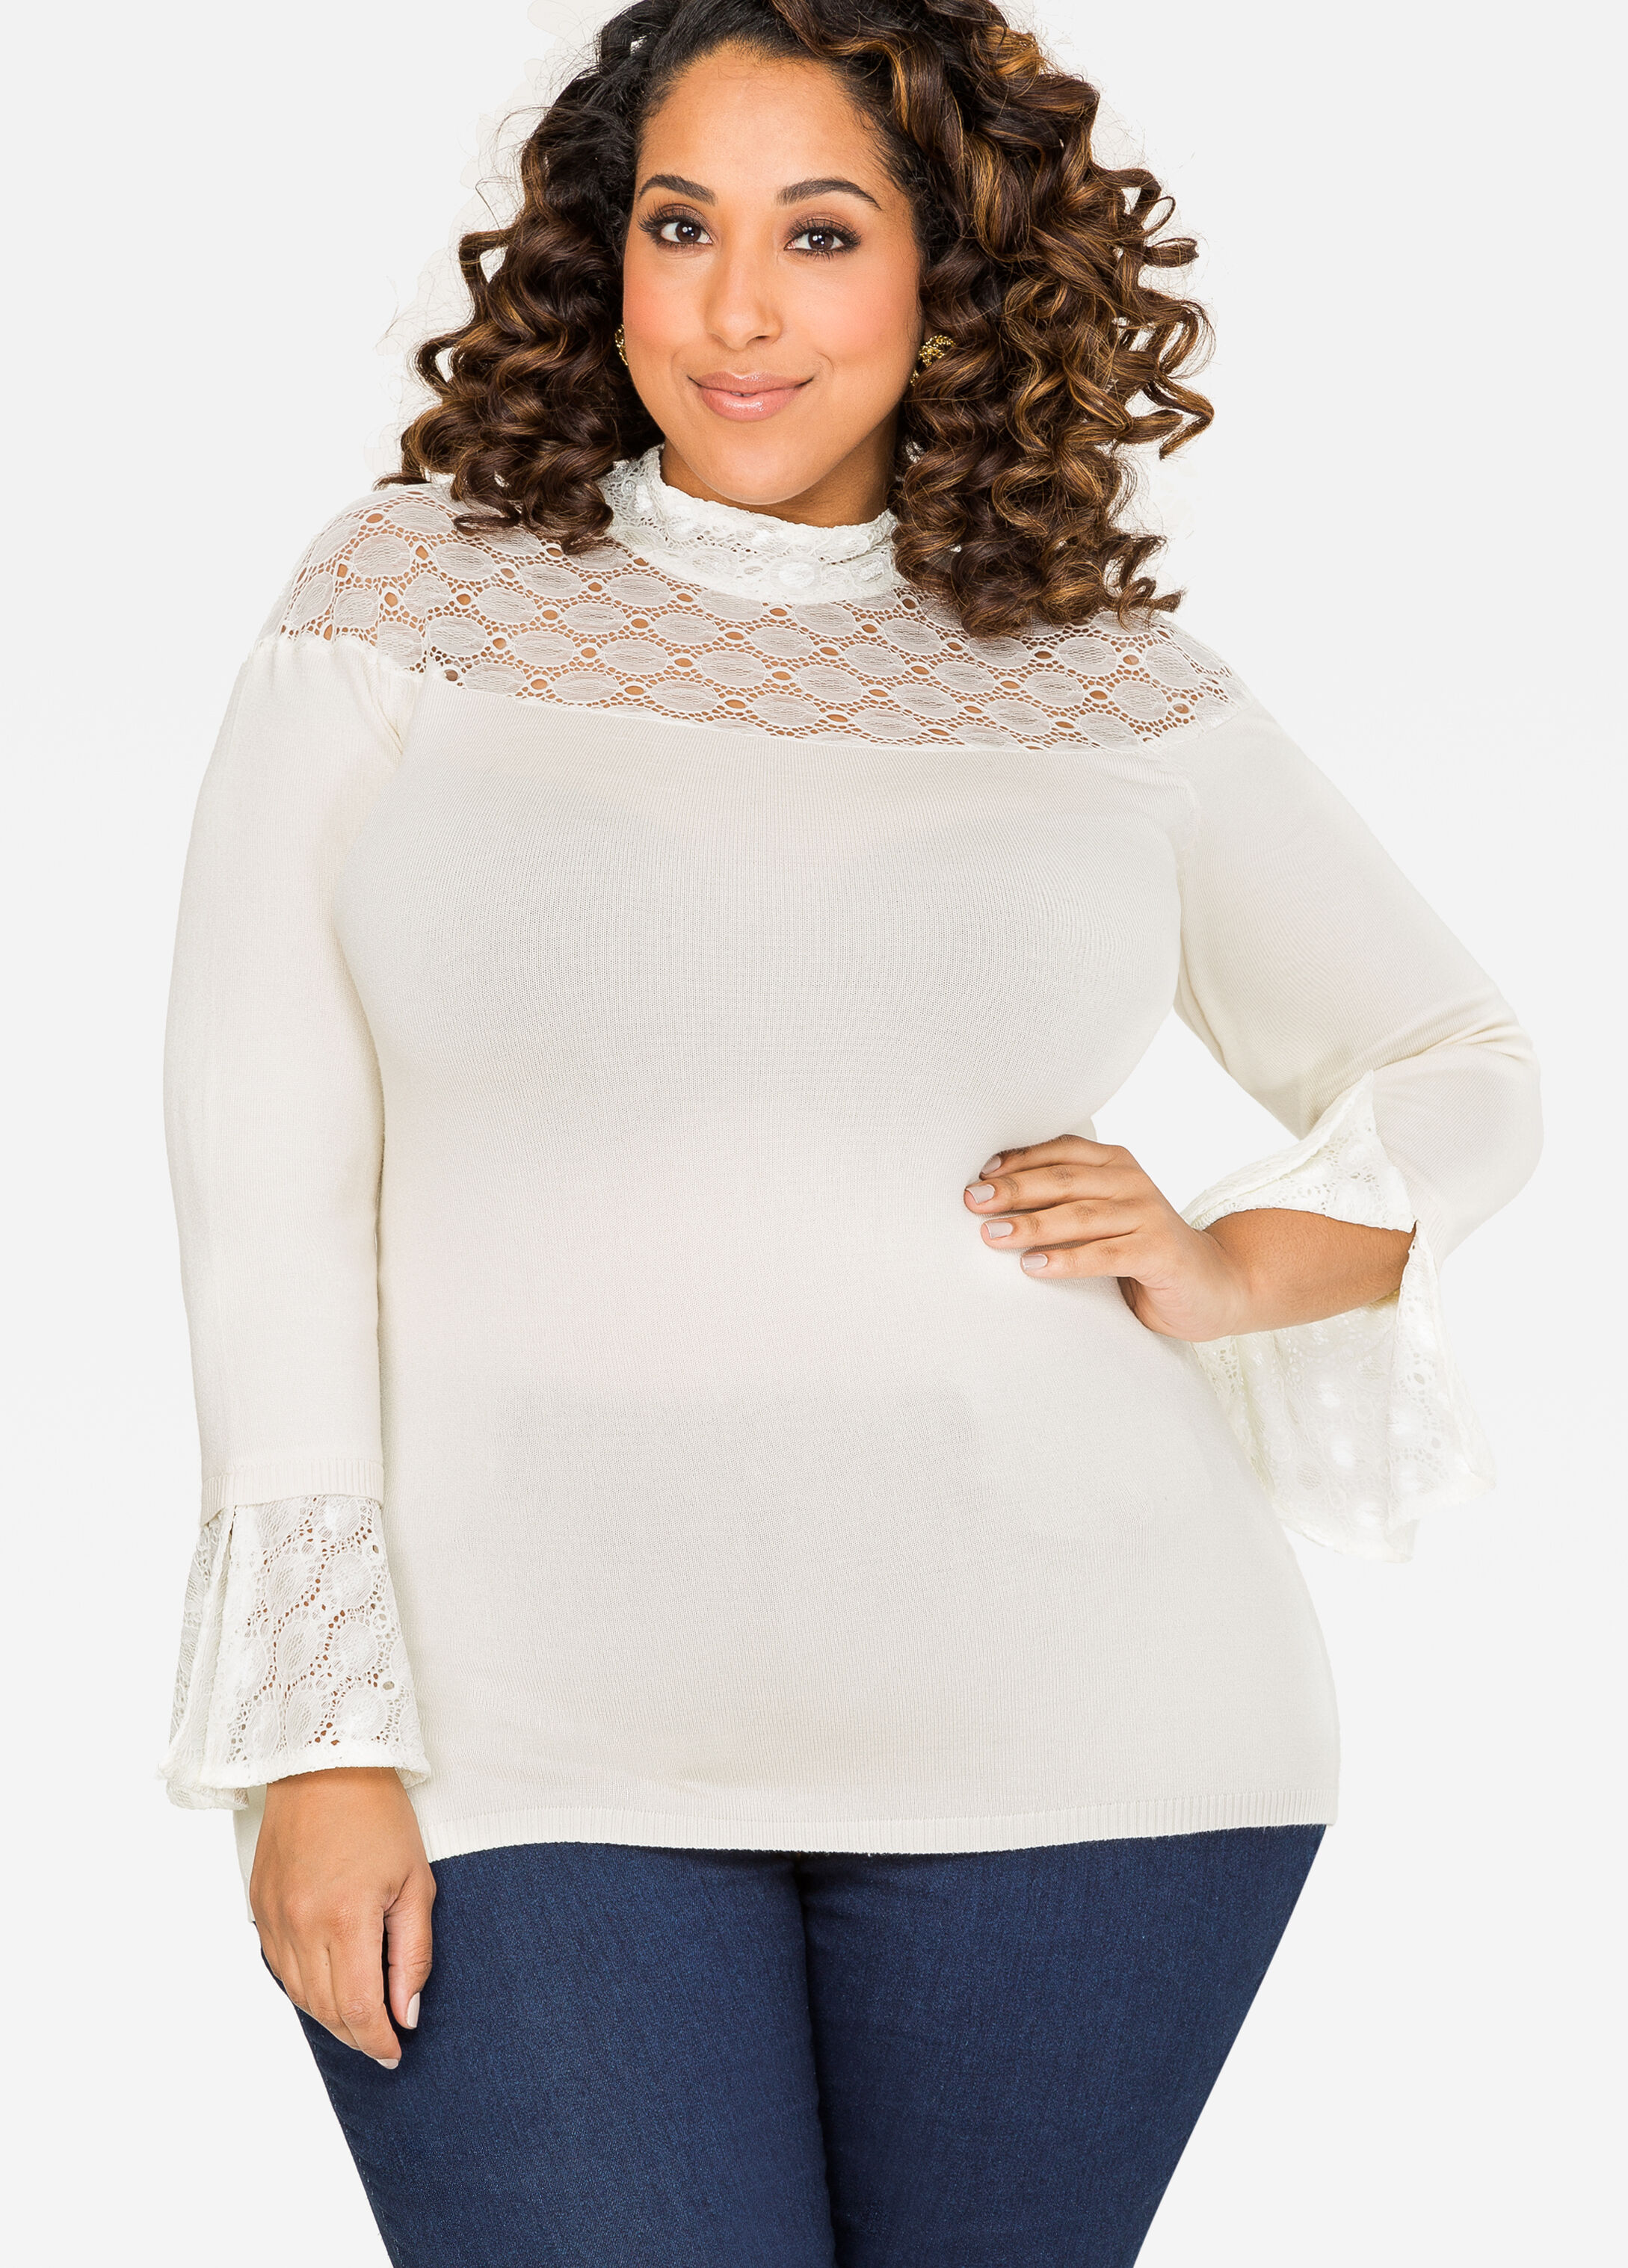 Crochet Lace Mock Neck Sweater